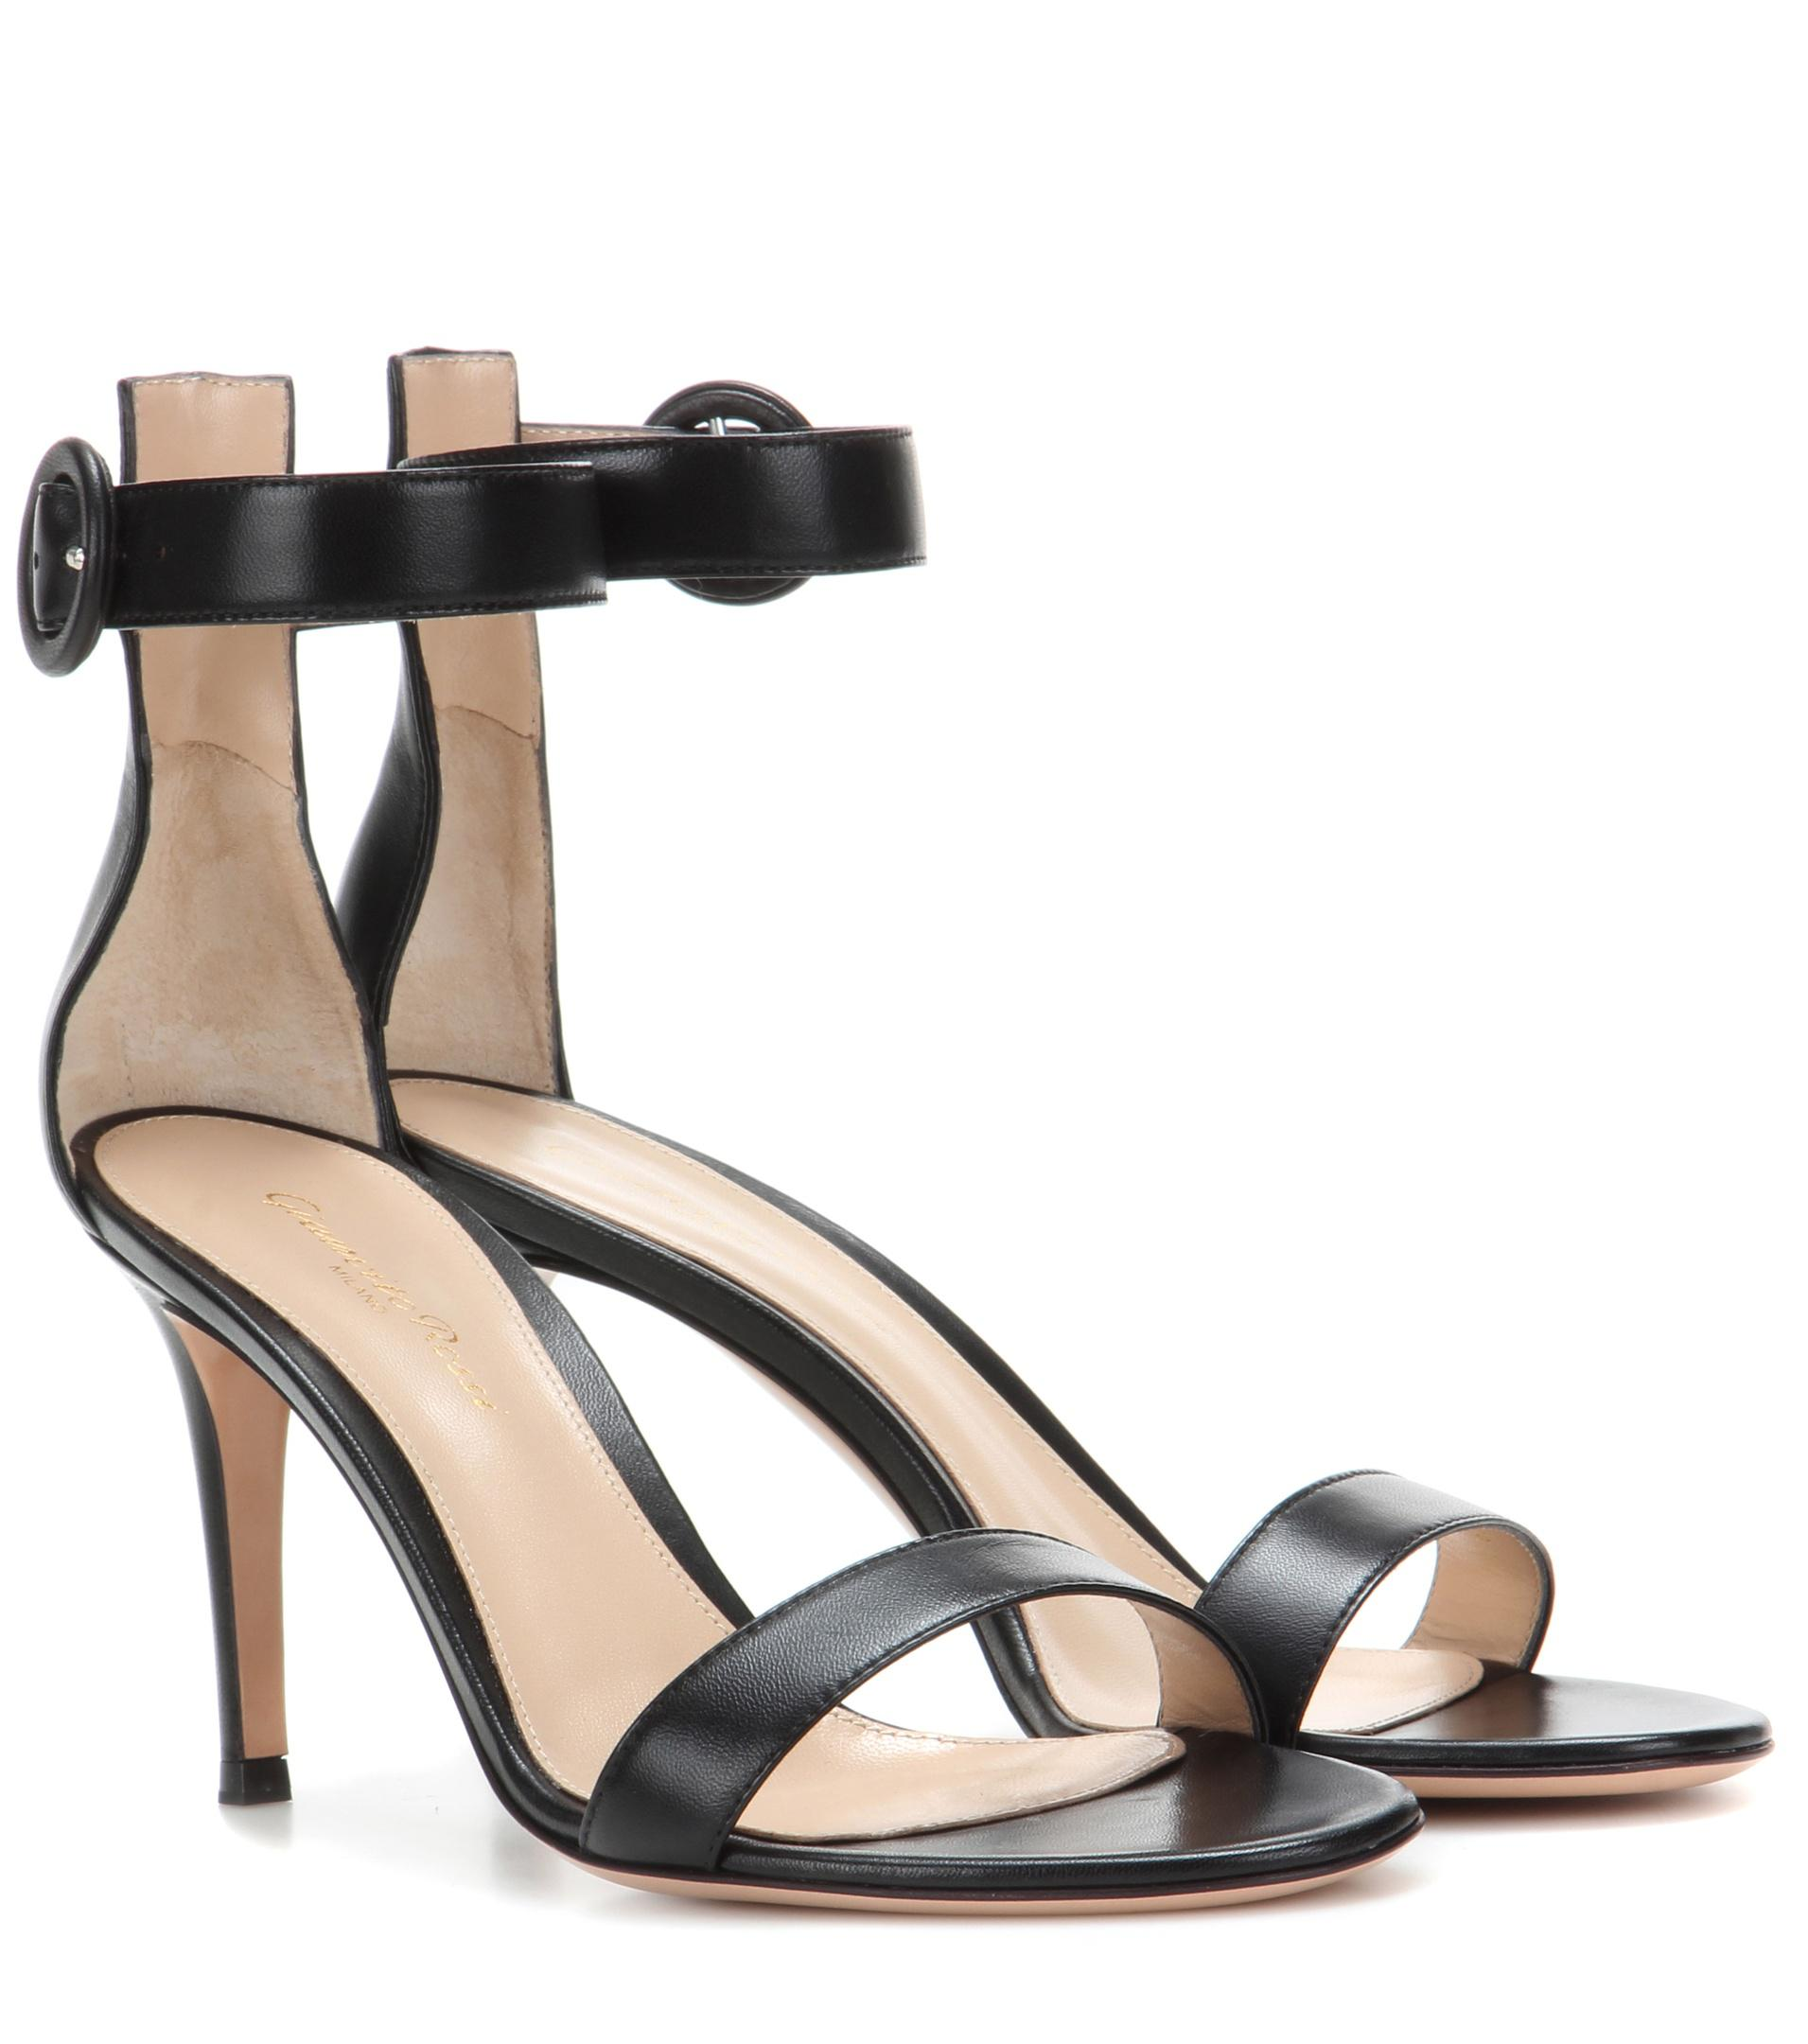 Best Place Newest Sale Online Portofino 105 Suede Sandals - Black Gianvito Rossi Sale Collections Lowest Price For Sale T0fC3de59i